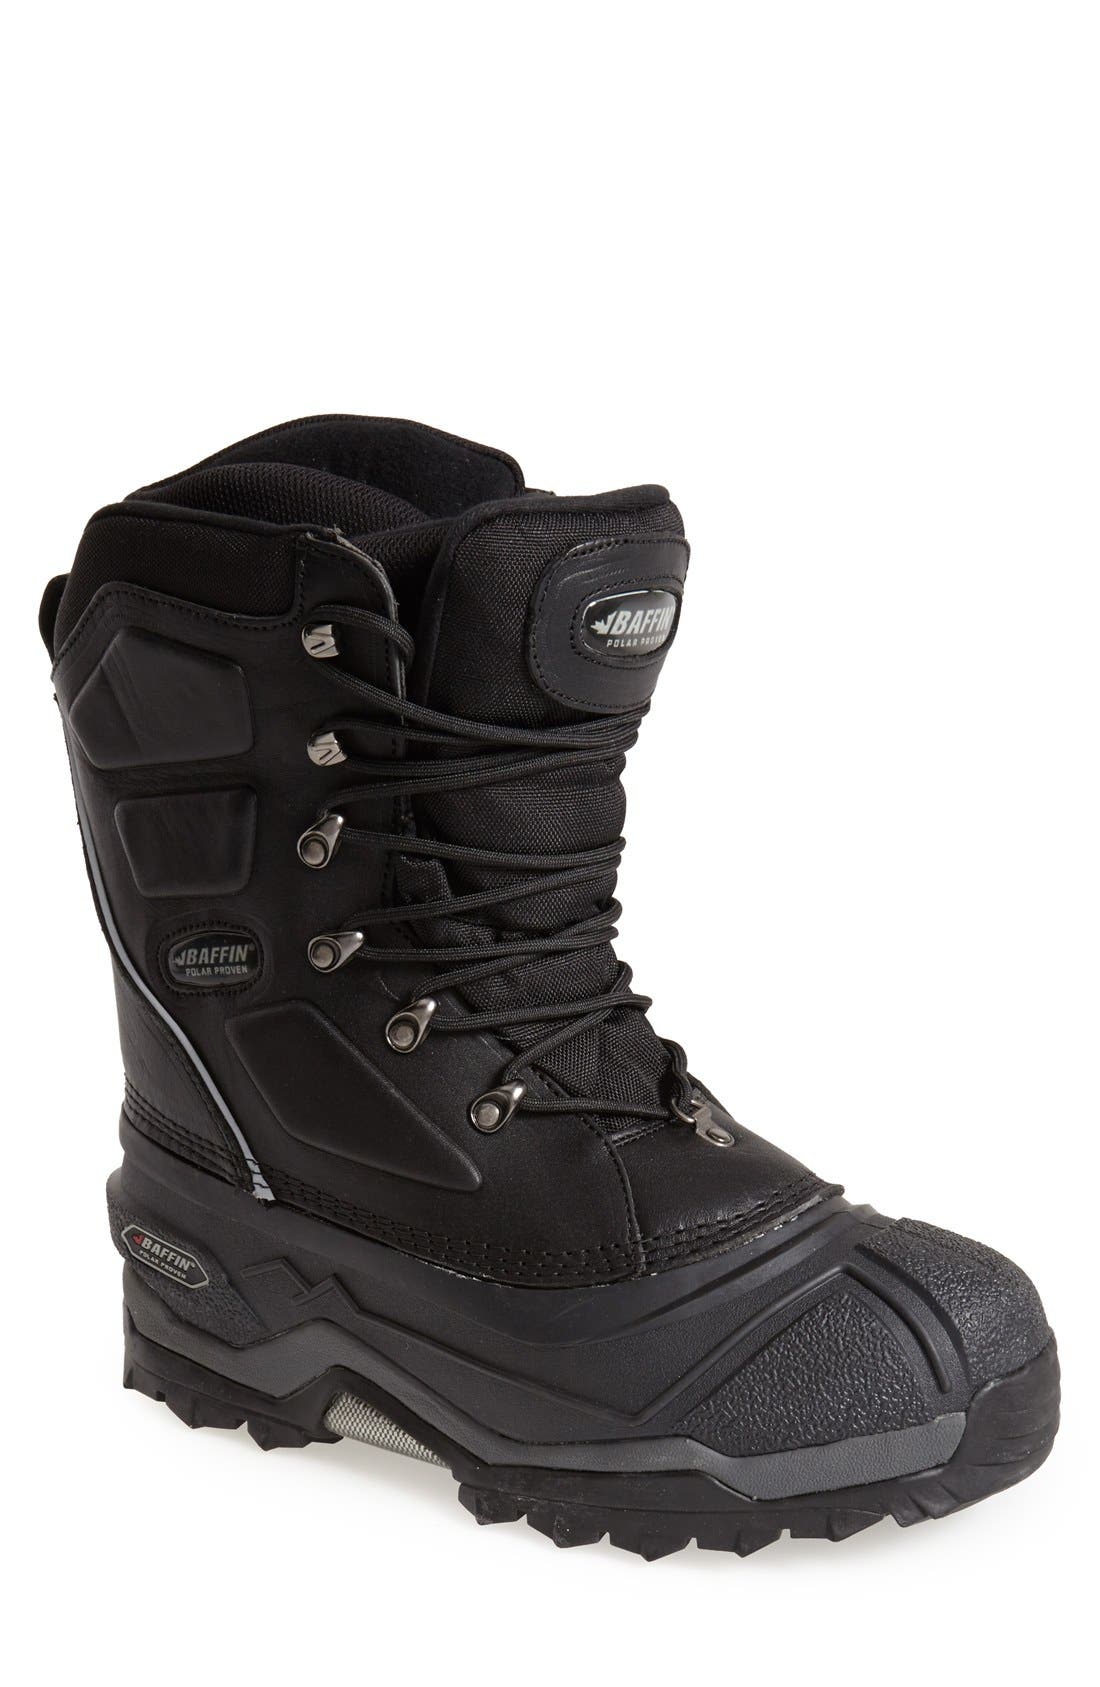 Alternate Image 1 Selected - Baffin 'Evolution' Snow Boot